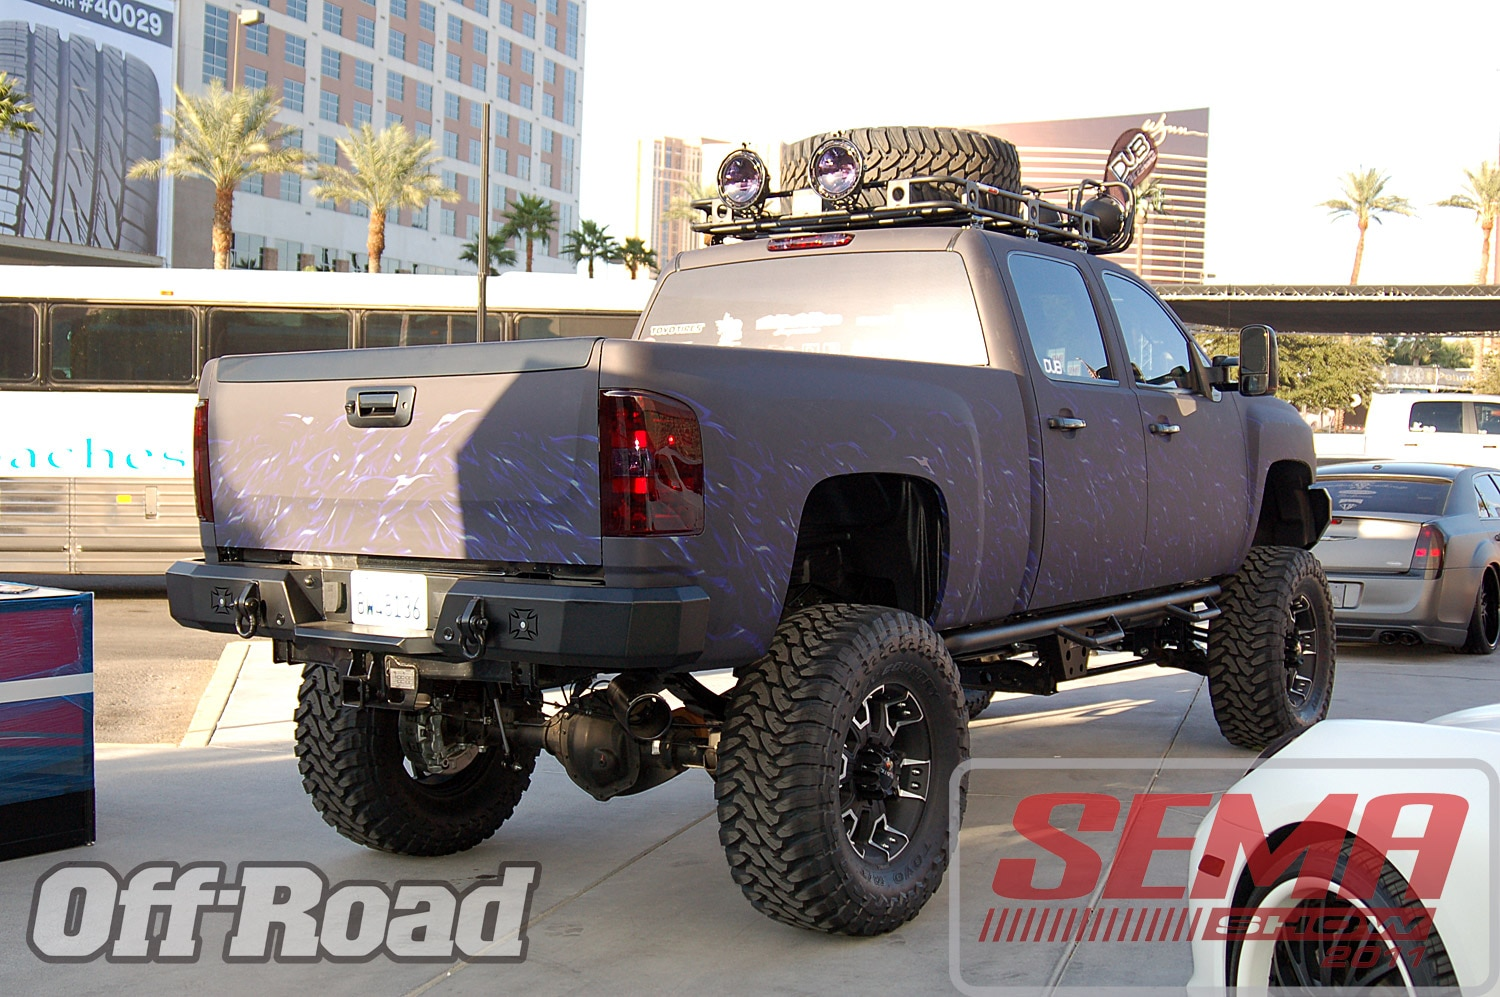 102312or 0091+2011 sema show+off road trucks and products